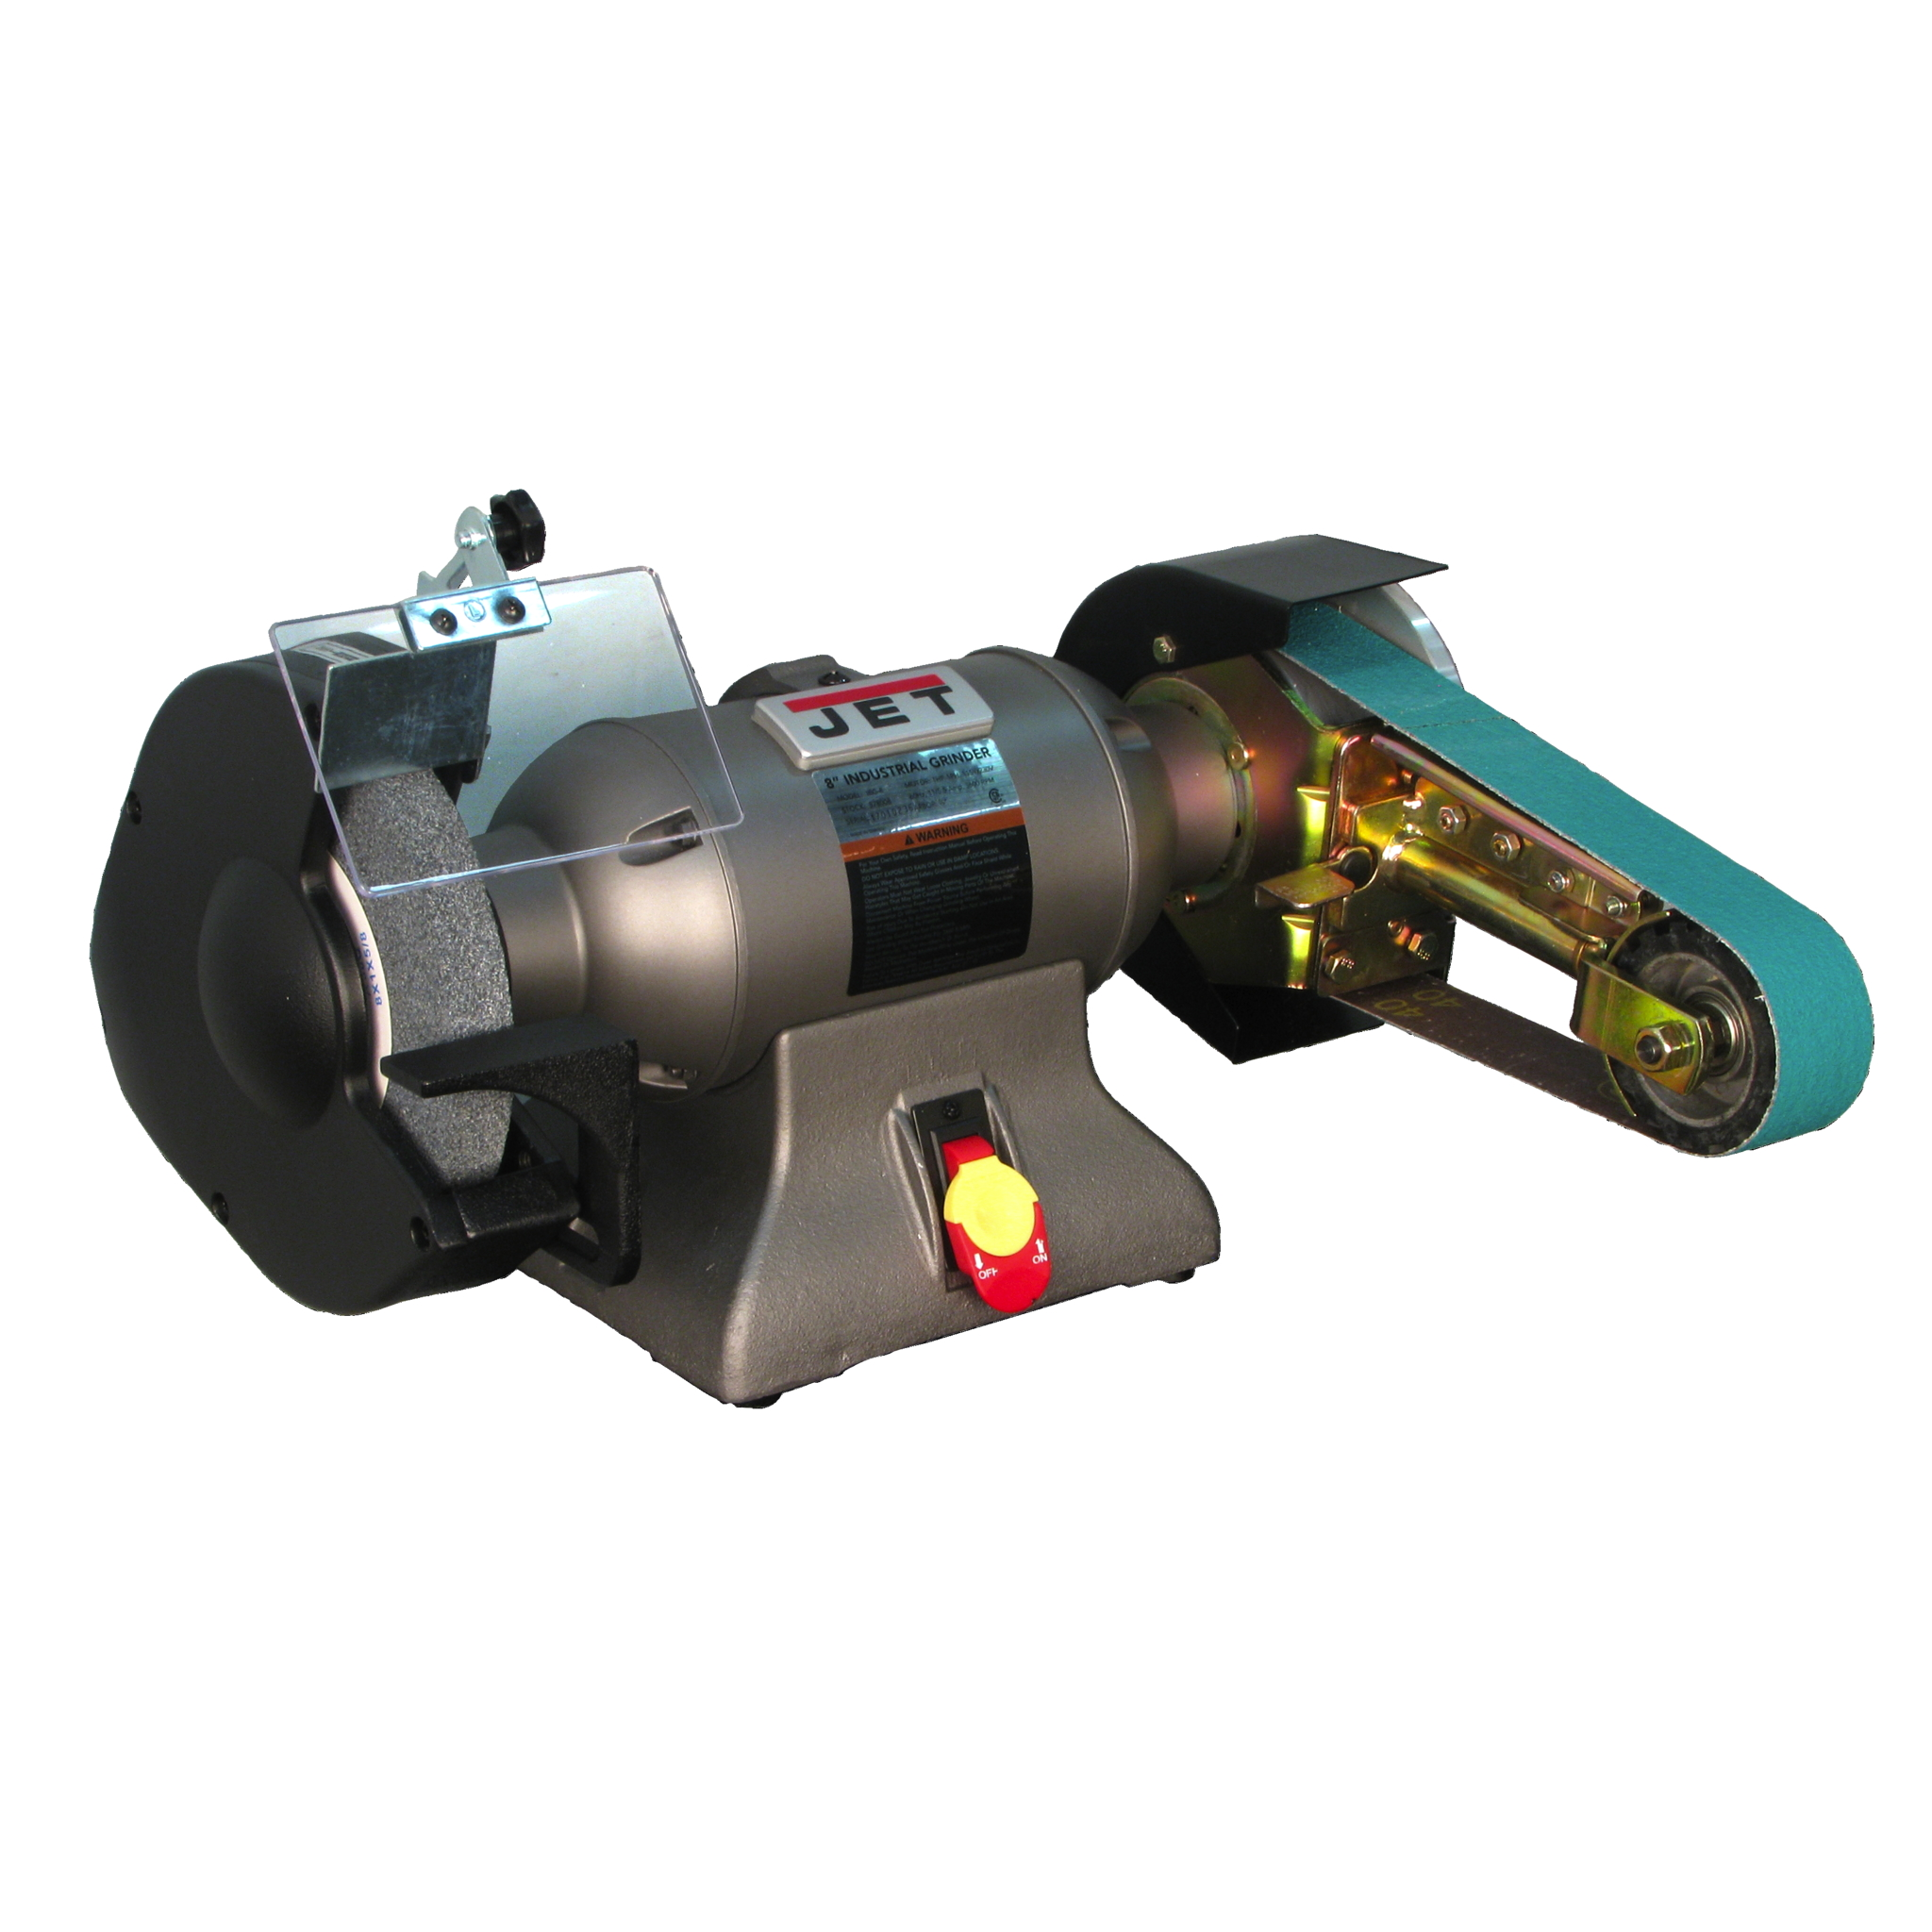 Jet Ibgm 8 8 Inch Jet Industrial Grinder With Multitool